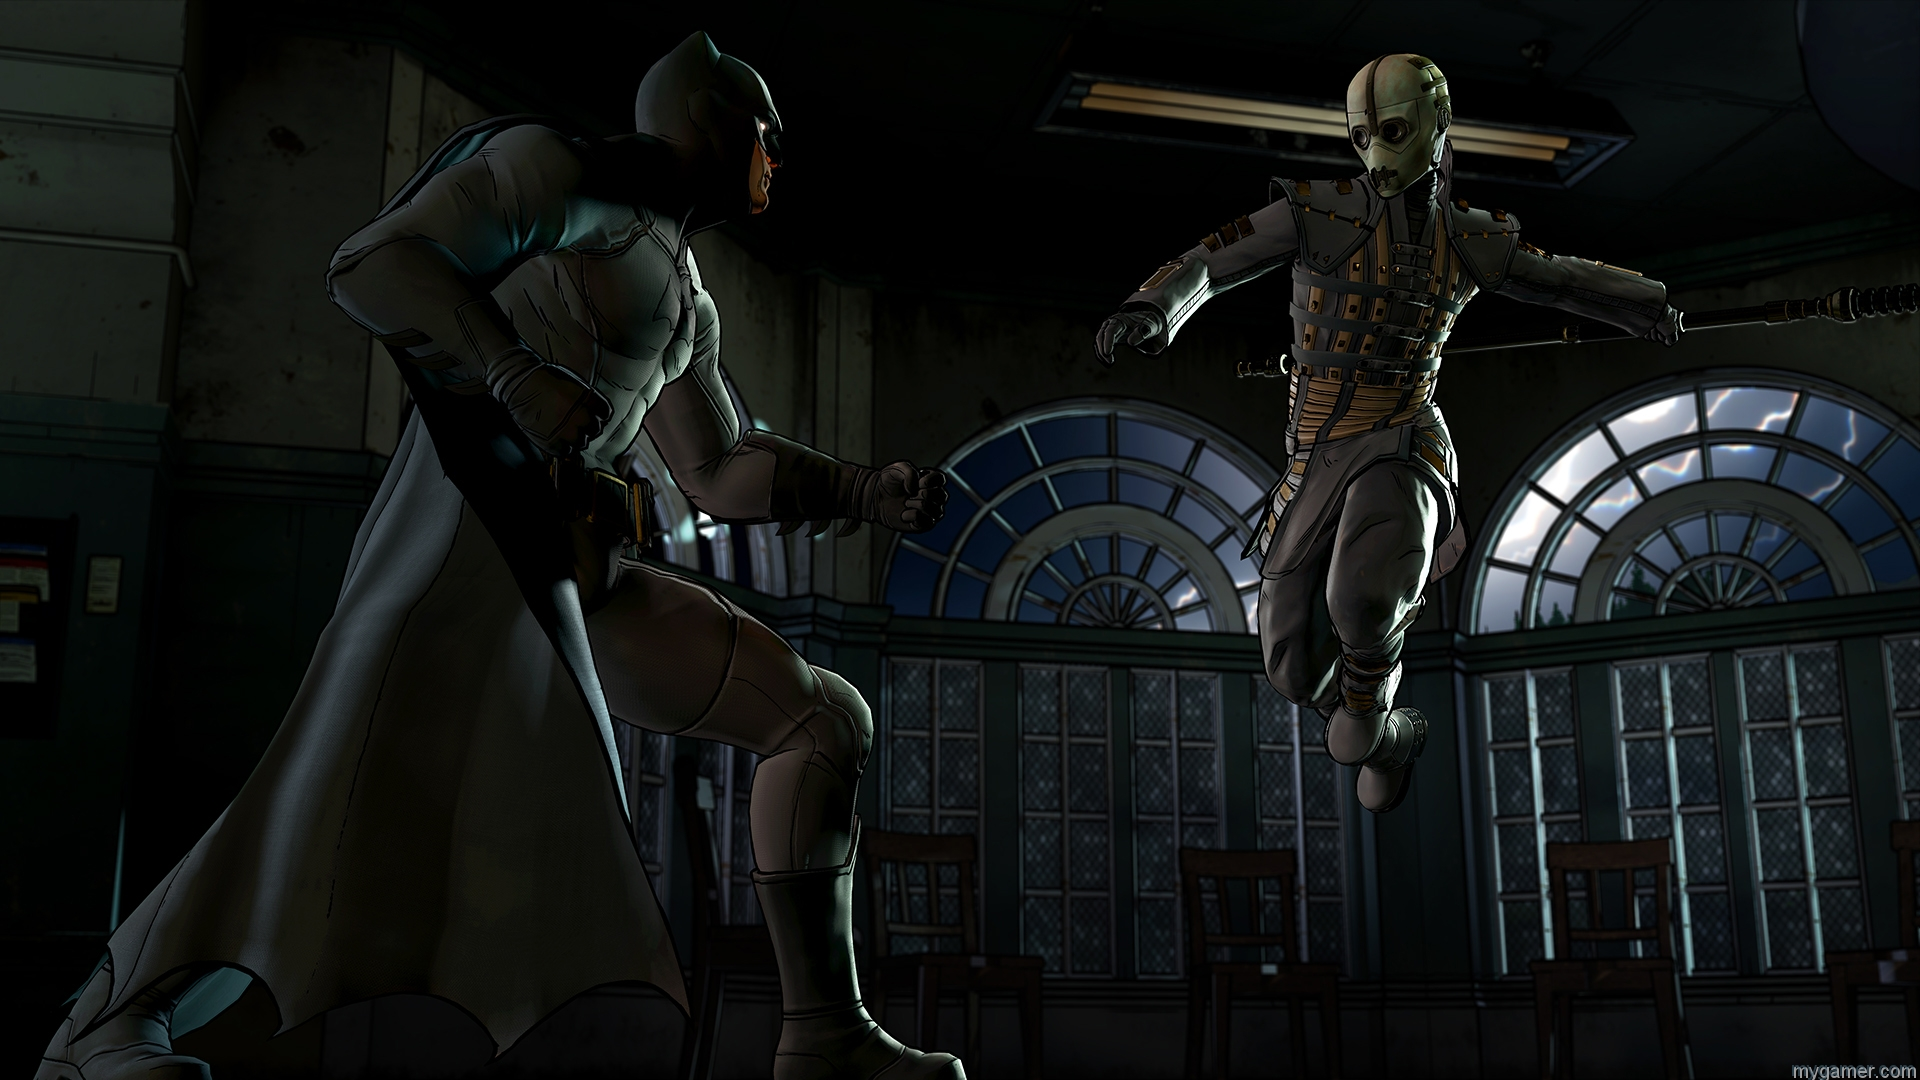 Batman: The Telltale Series - Episode 5 - City of Light Review Batman: The Telltale Series - Episode 5 - City of Light Review batman the telltale series ep 5 city of light ps4 review 3